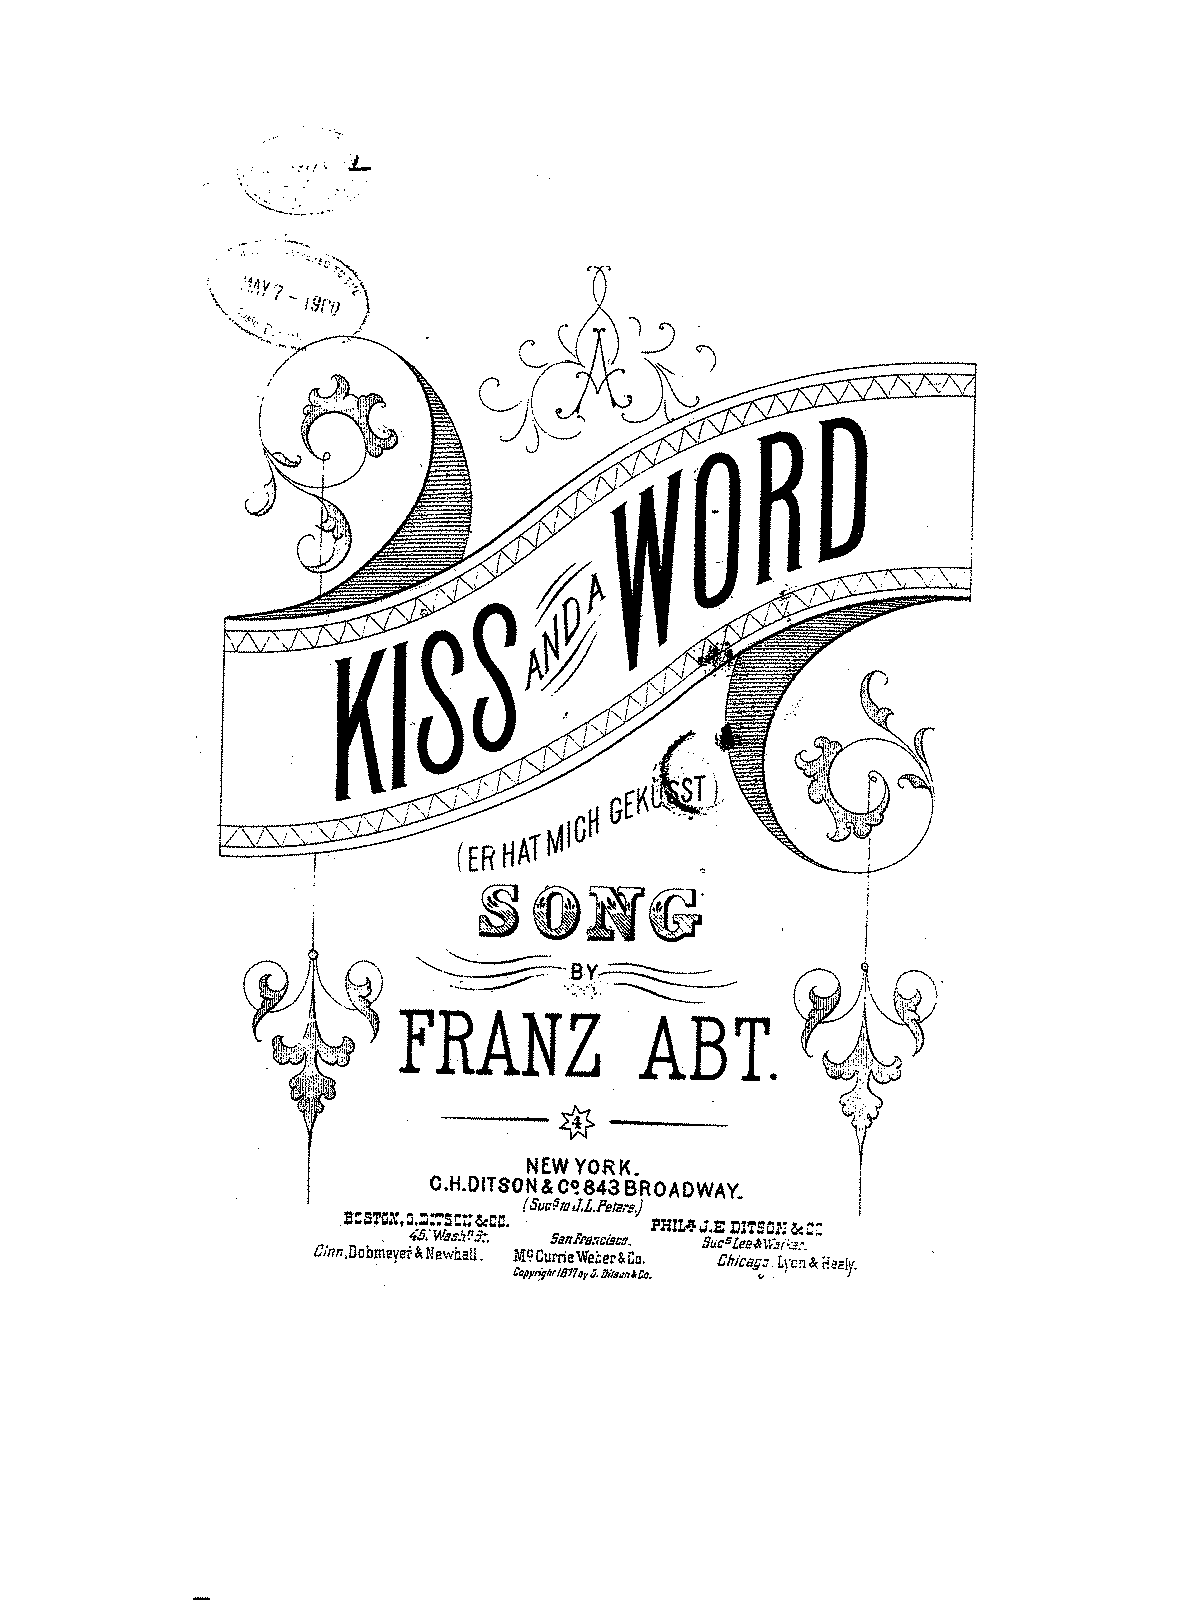 PMLP299215-Abt A Kiss and a Word Op.488.pdf